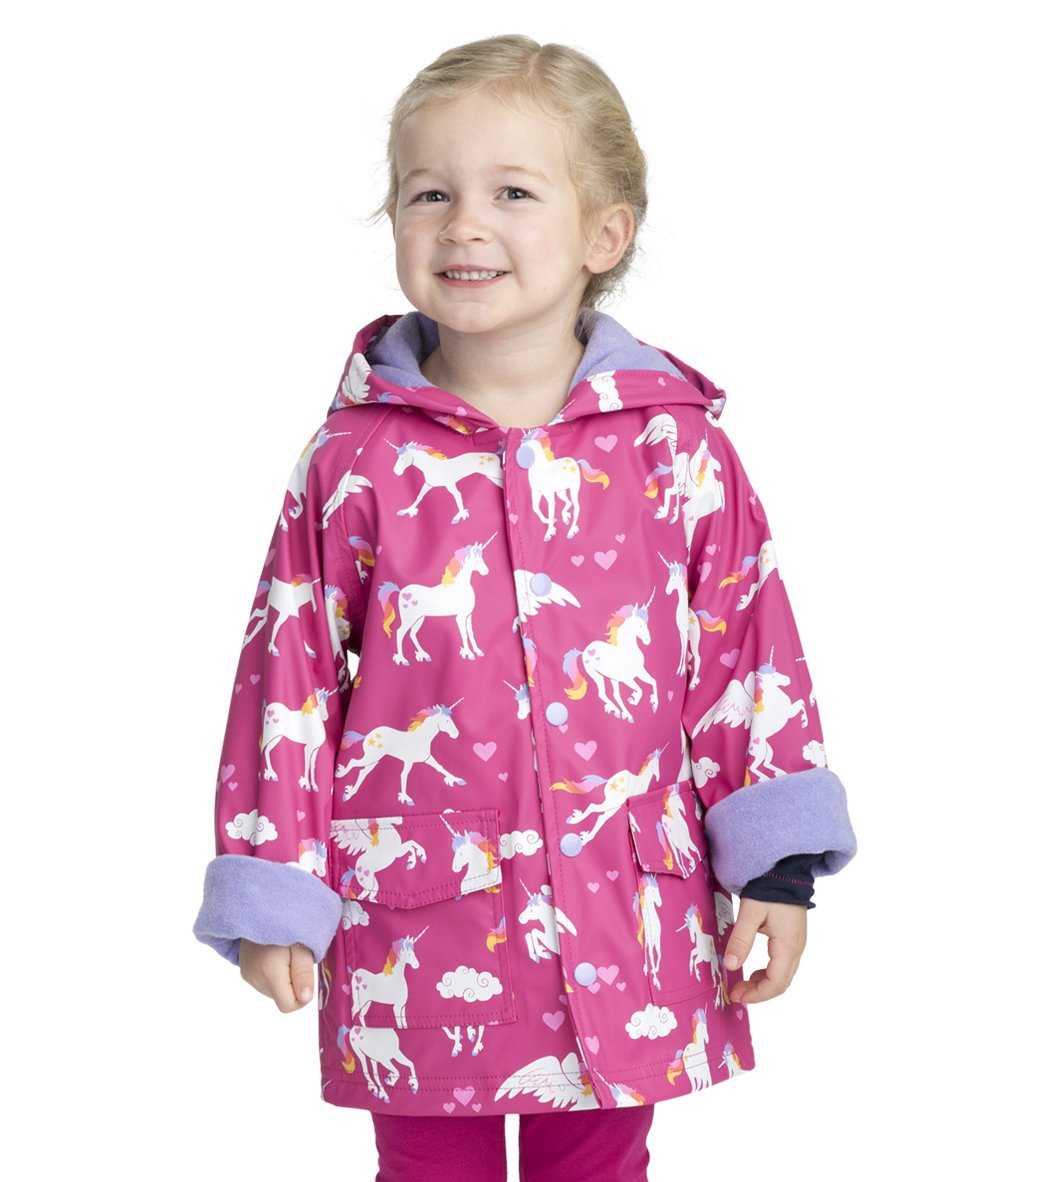 Hatley Little Girls' Printed Raincoats, Rainbow Unicorns, 6